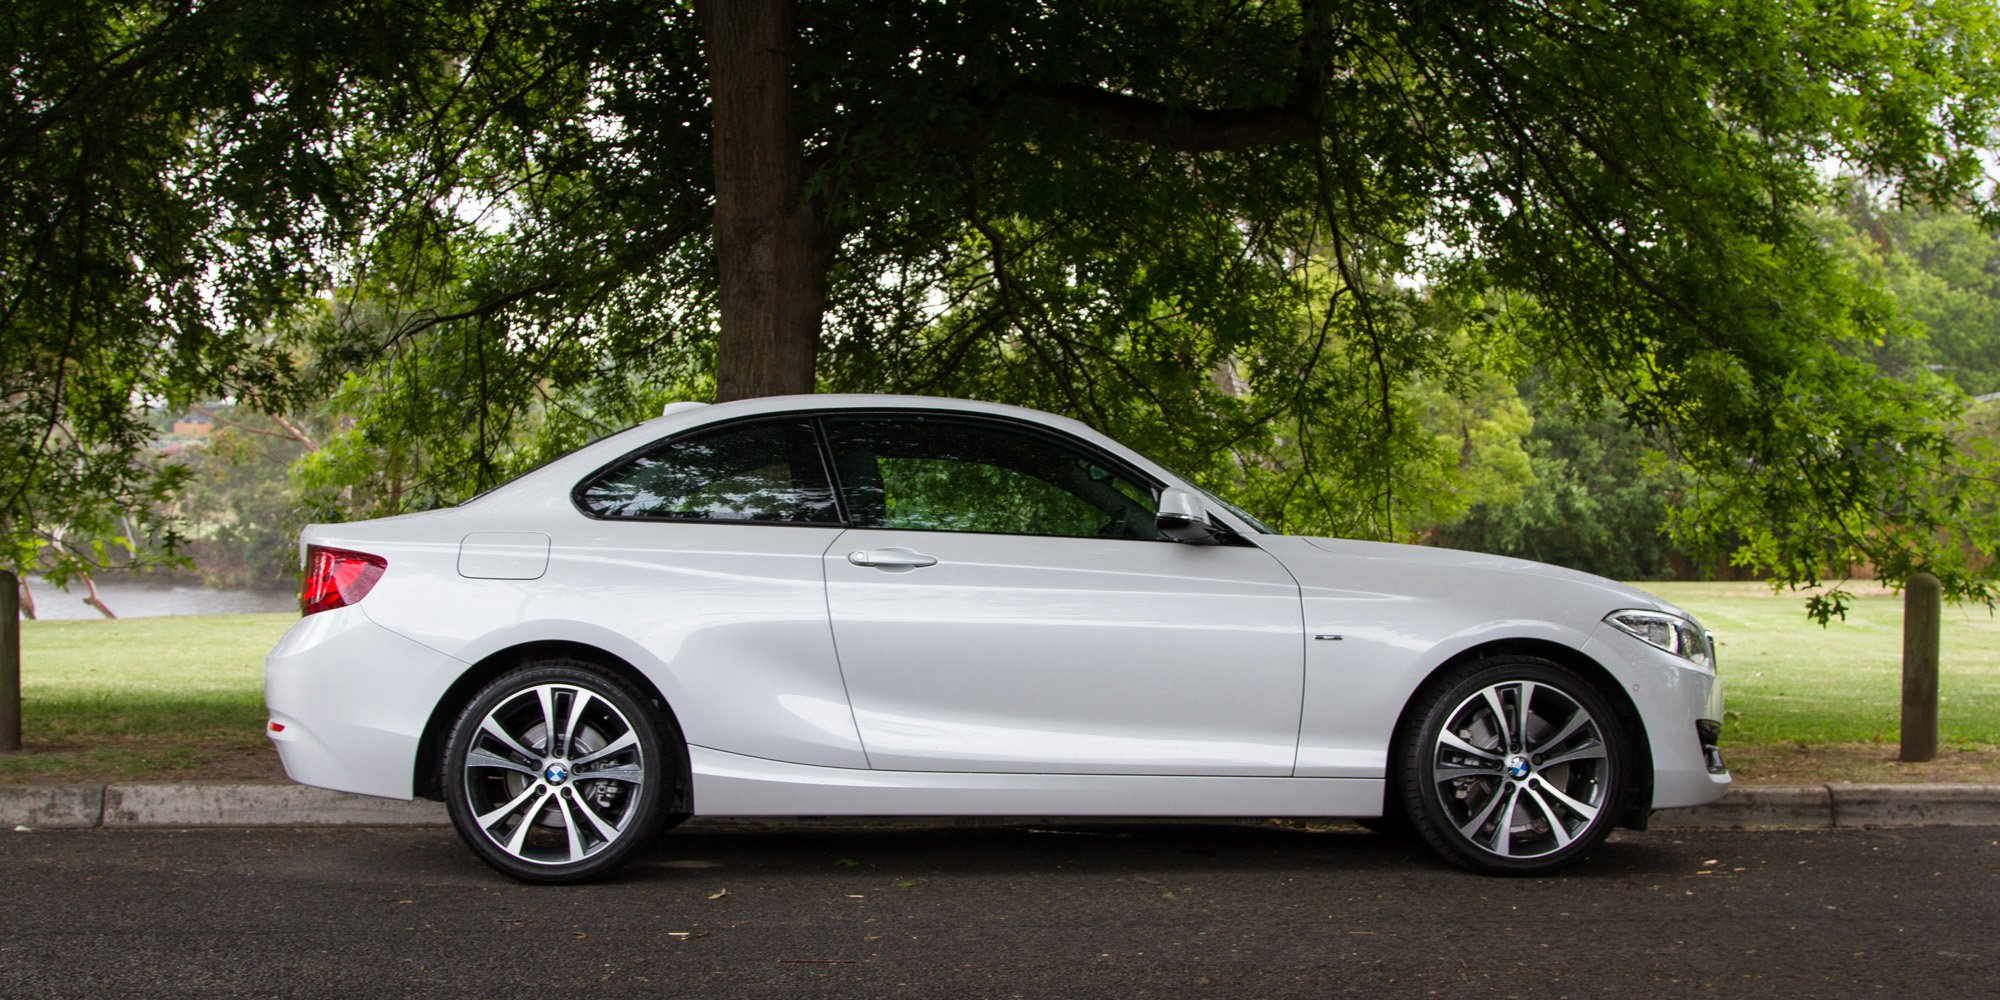 2015 bmw 2 series review 228i coupe caradvice - Bmw 2 series coupe pictures ...